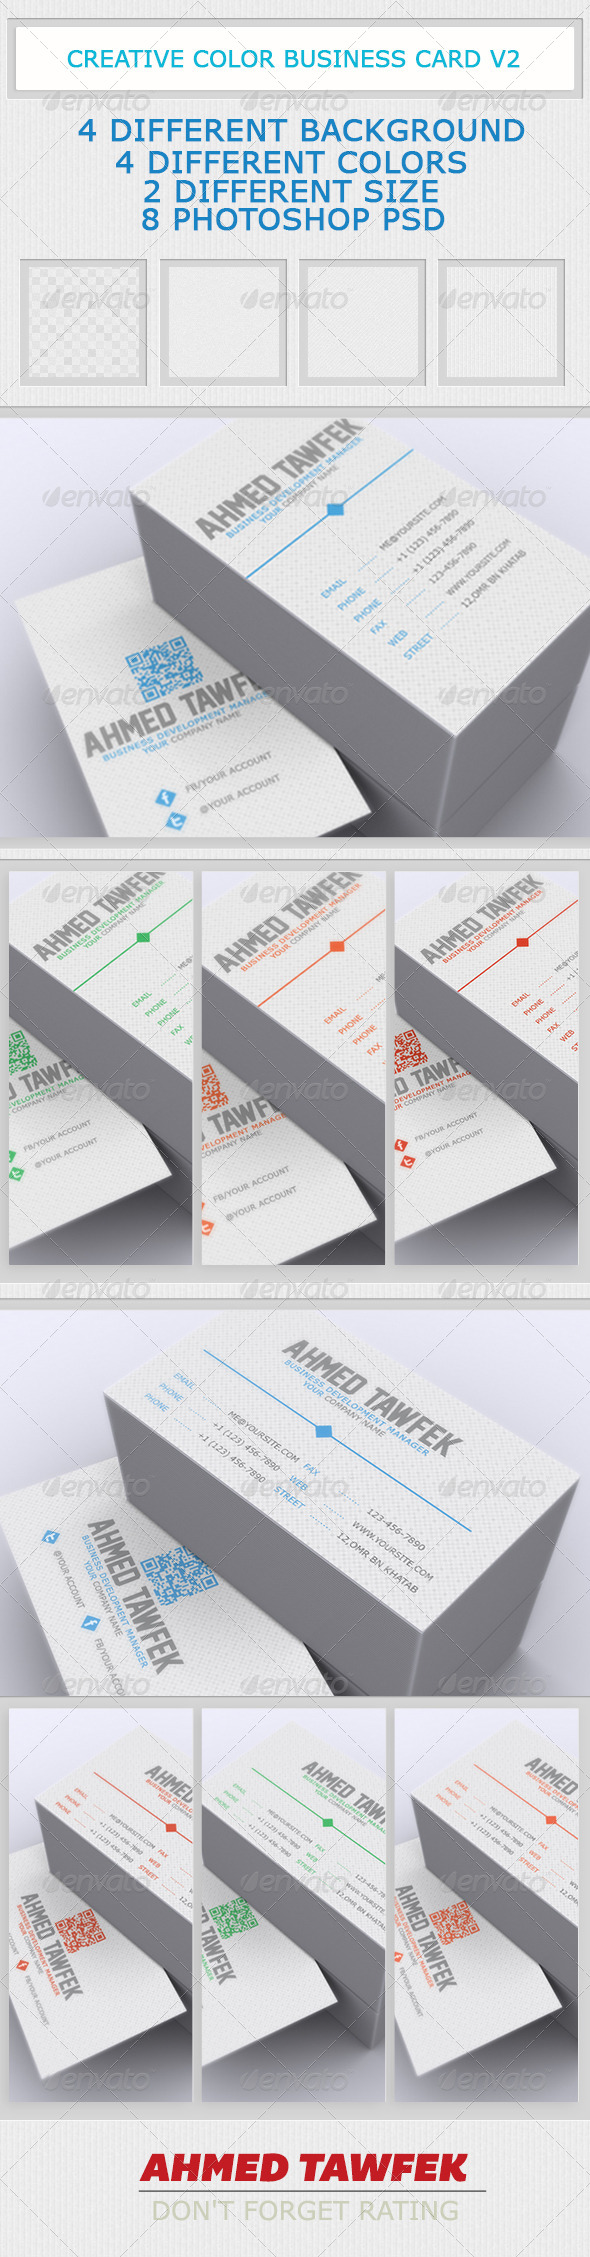 Creative Color Business Card V2